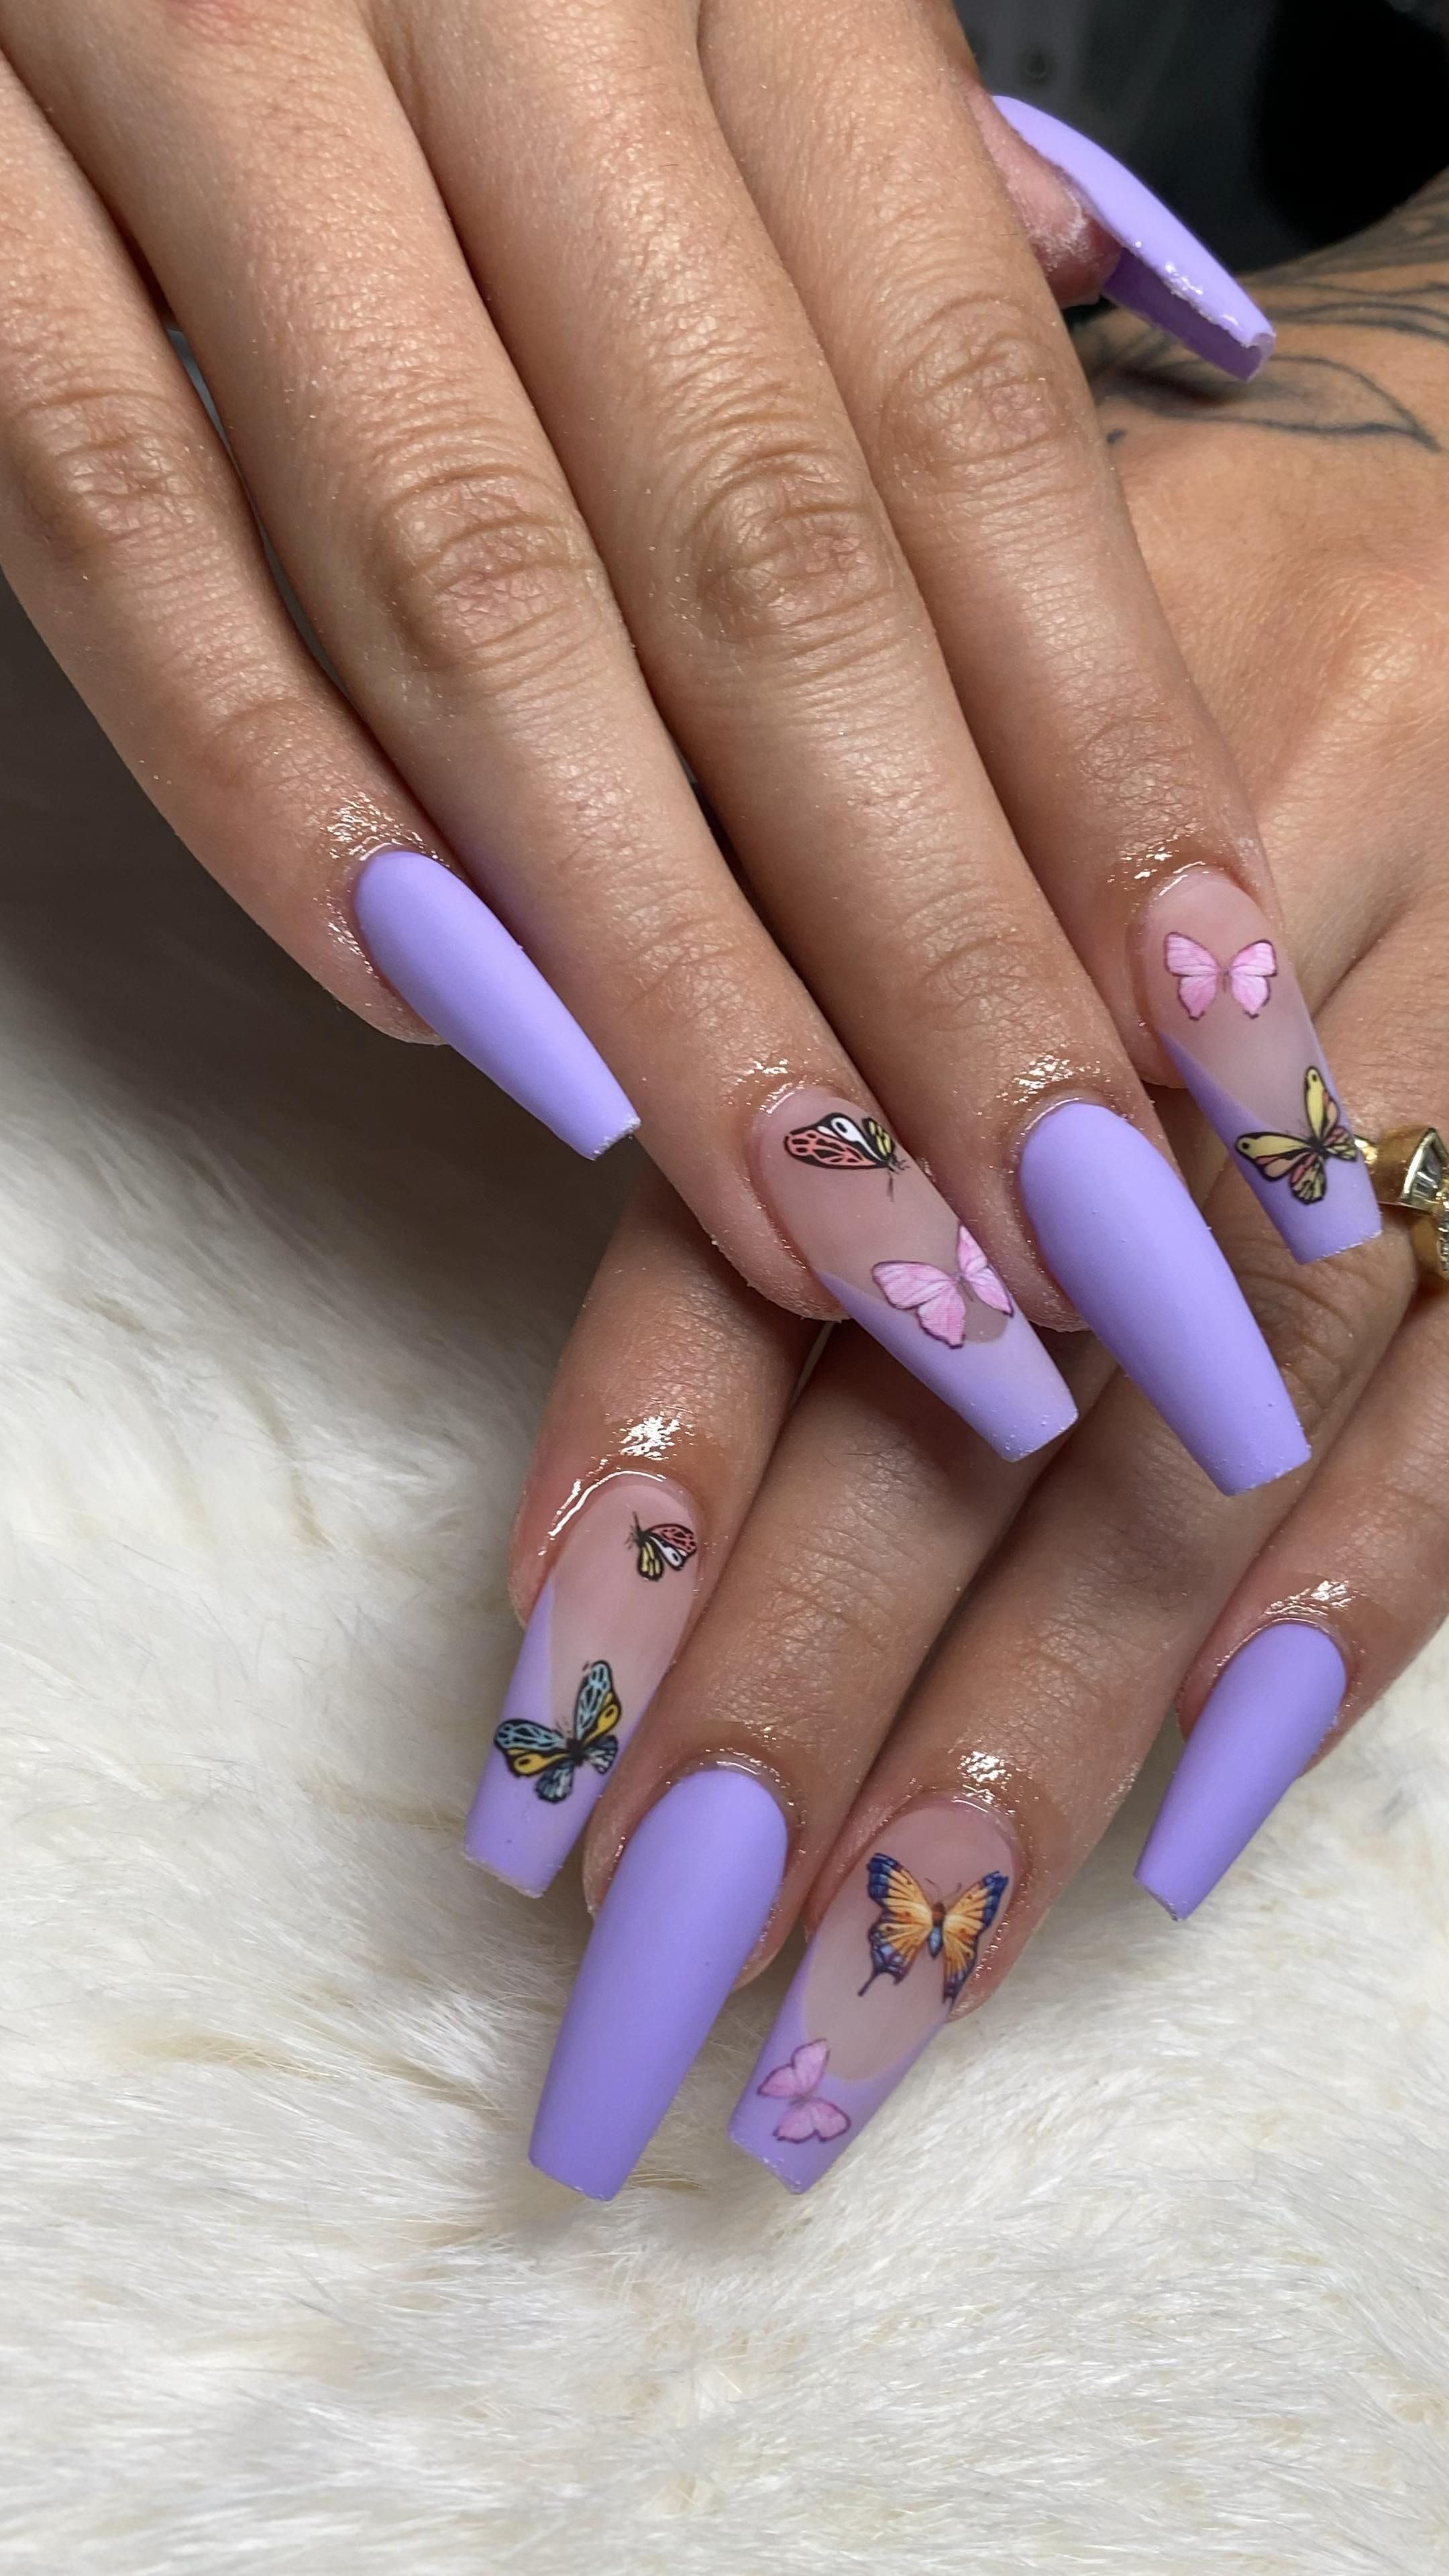 Butterfly Nail Art Matte Purple Acrylic Nails In 2020 Purple Acrylic Nails Gel Nails Purple Nails